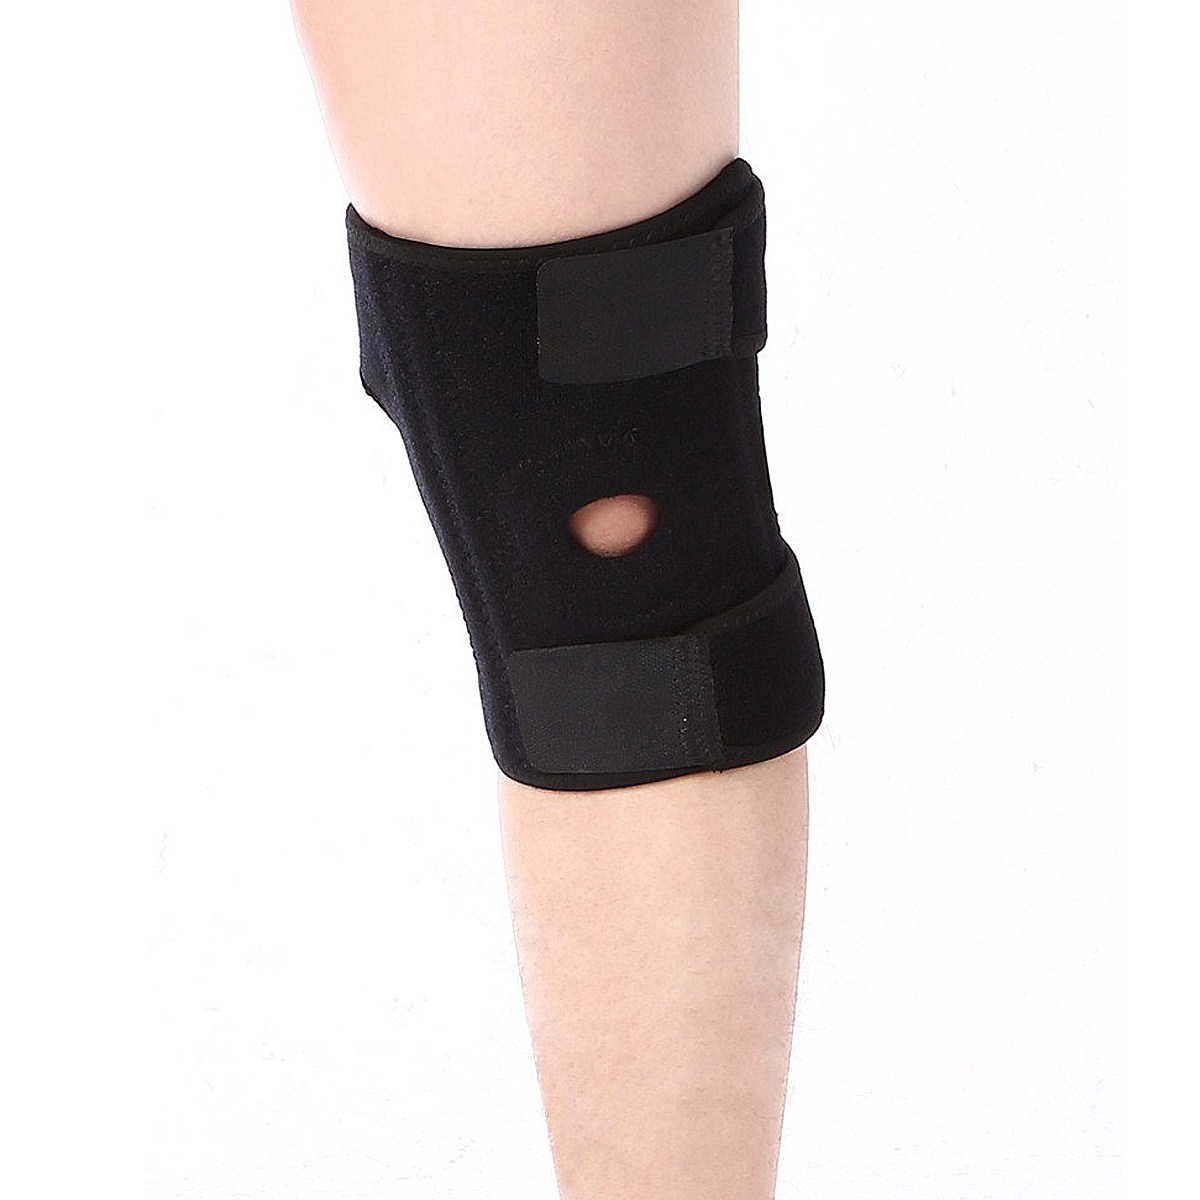 NEW Safurance Outdoor Sports Leg Knee Patella Compression Protector Brace Support Pad Sleeve Workplace Safety Kneepad knee patella sport support guard pad protector brace strap stabilizer protection white